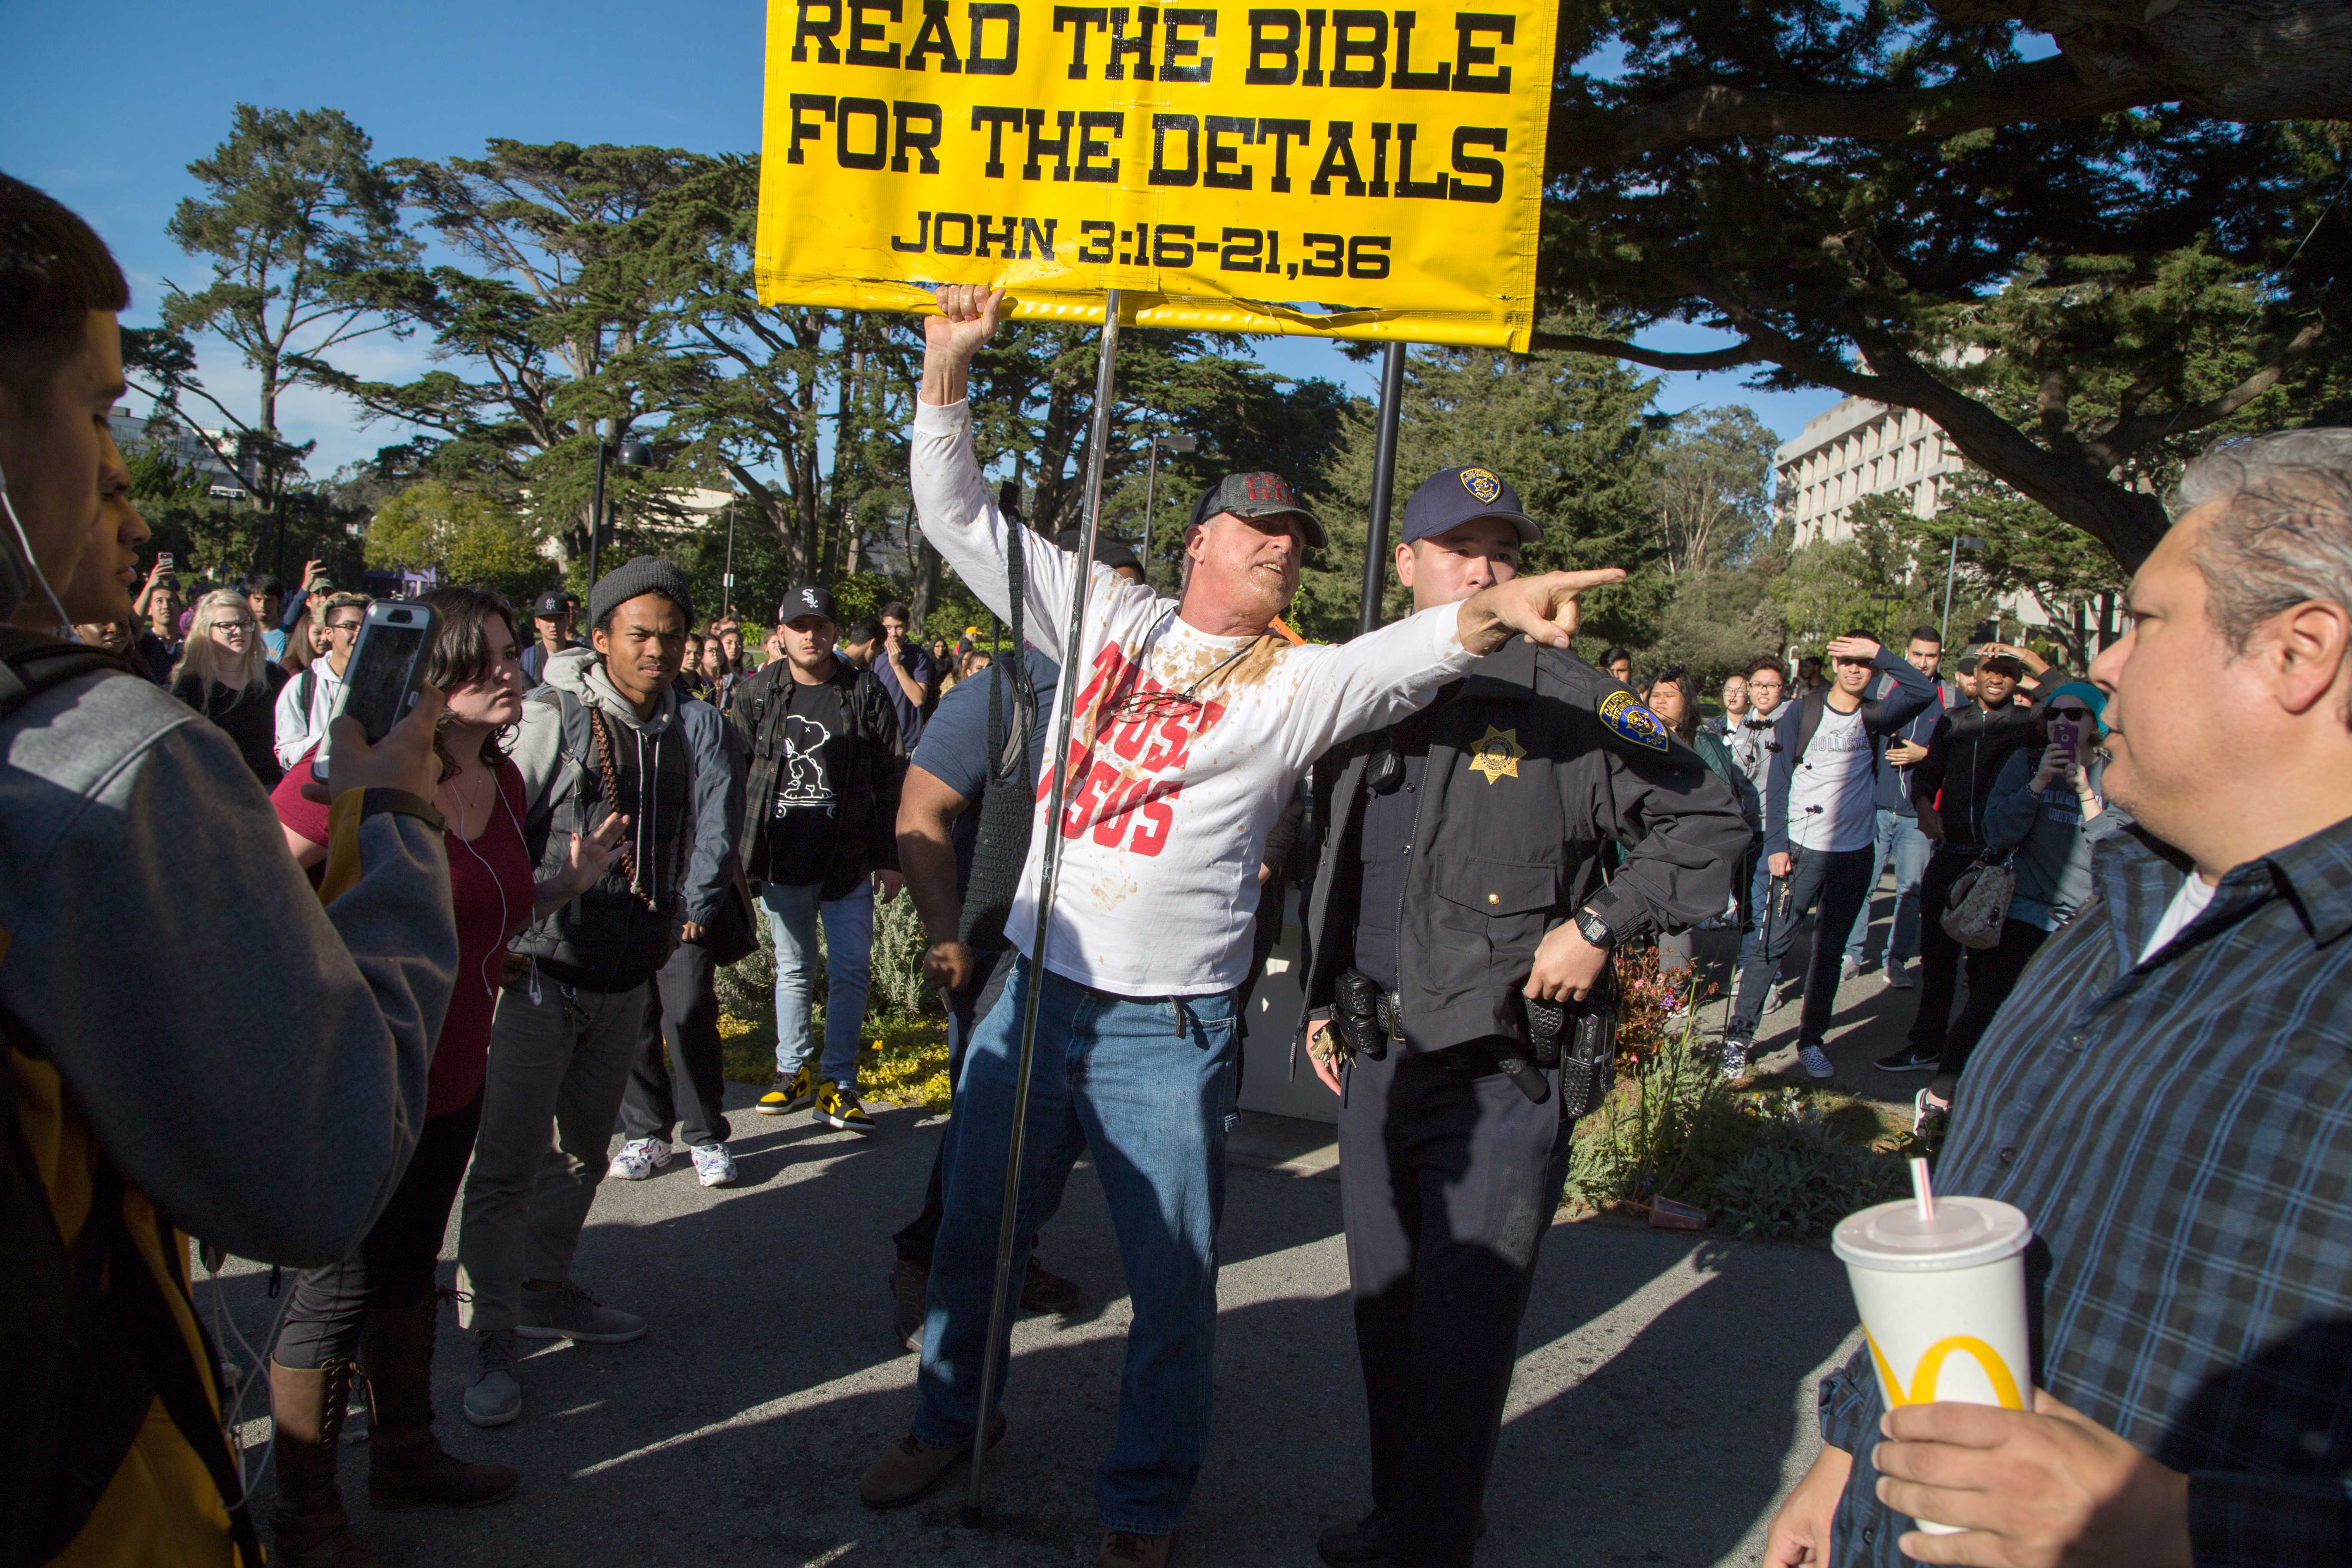 A religious activist speaks to a campus police officer following a physical altercation with students on campus at SF State on Wednesday, Nov. 29, 2017. (Travis Wesley/Golden Gate Xpress)